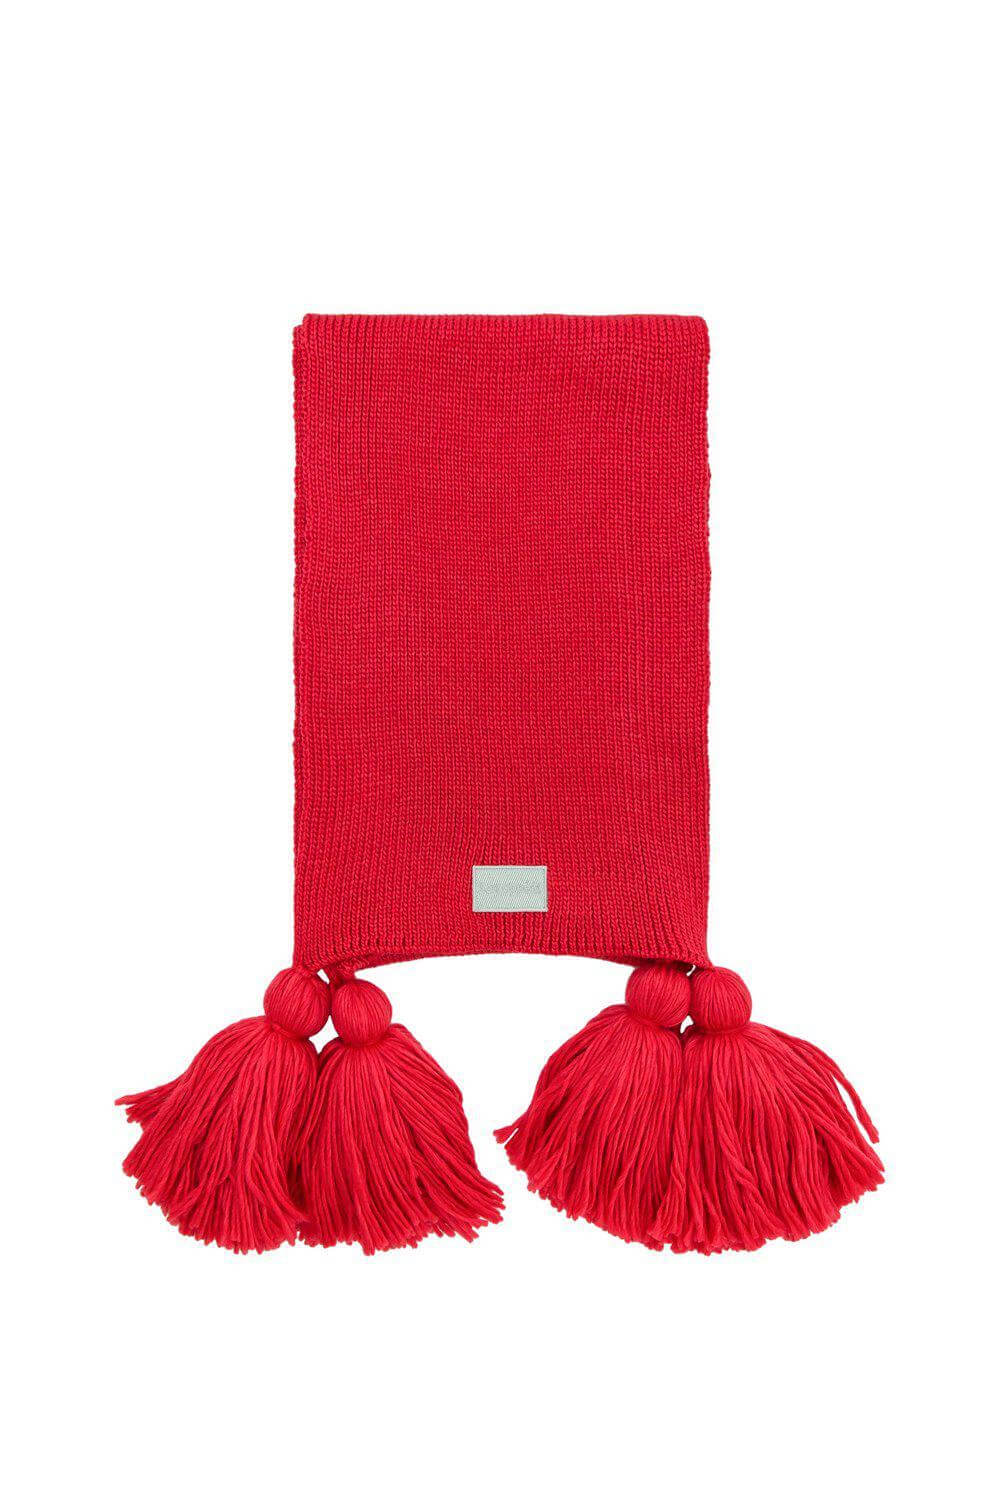 Scarf in red knit